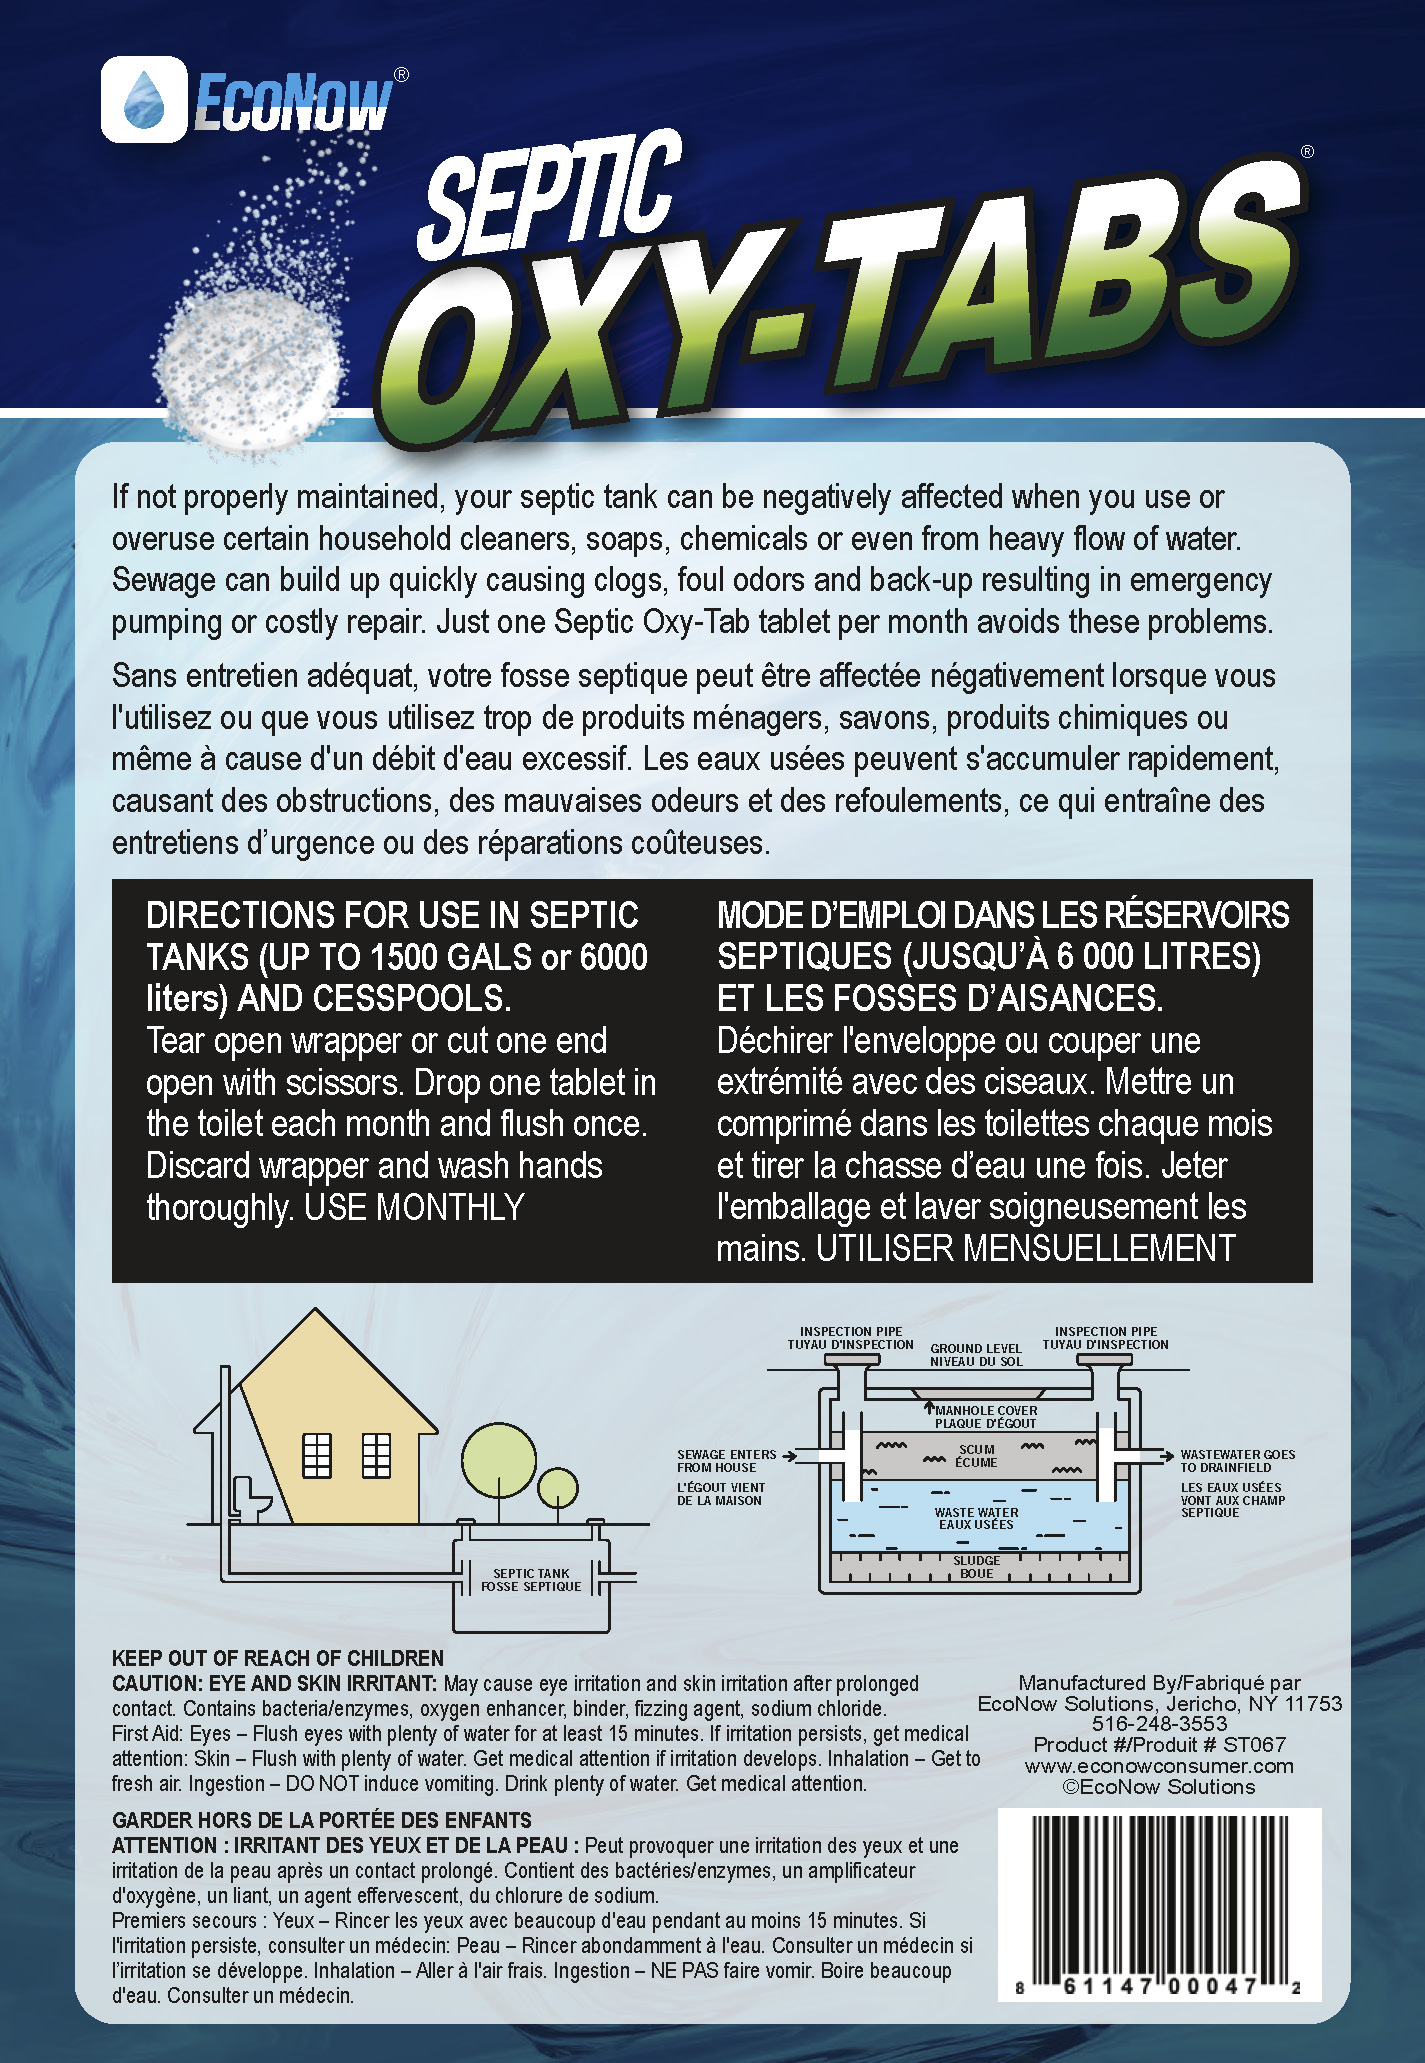 Means for septic tanks: overview, features and instructions for use